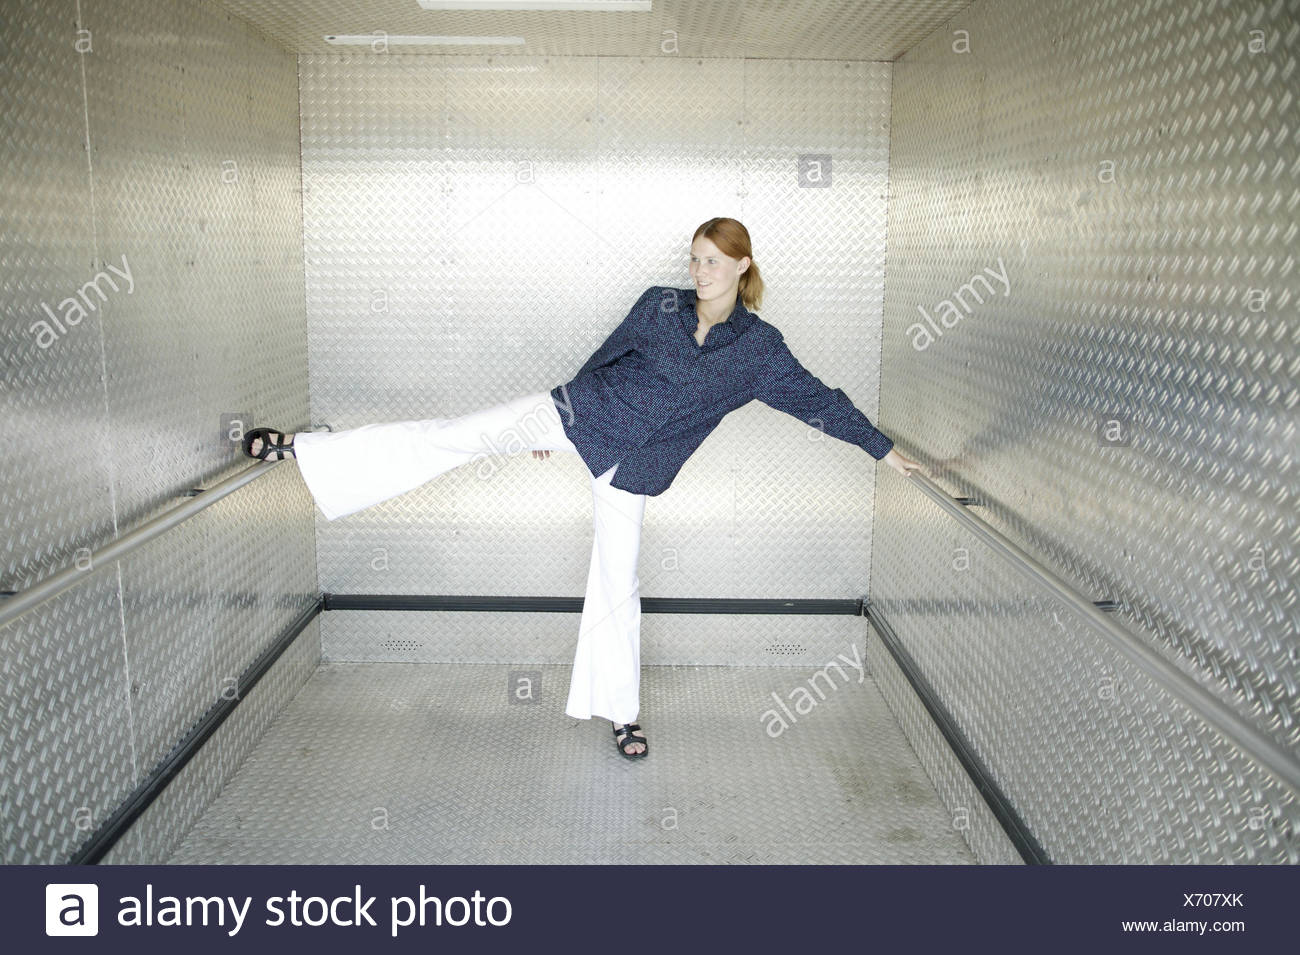 Lift, woman, young, motion, stretch, 15 stick - 20 years, young persons, trainees, trainee, lift, lift, handrail, try out, test, distension exercises, abilities, range, occupational entrance, skill, mobility, inside - Stock Image